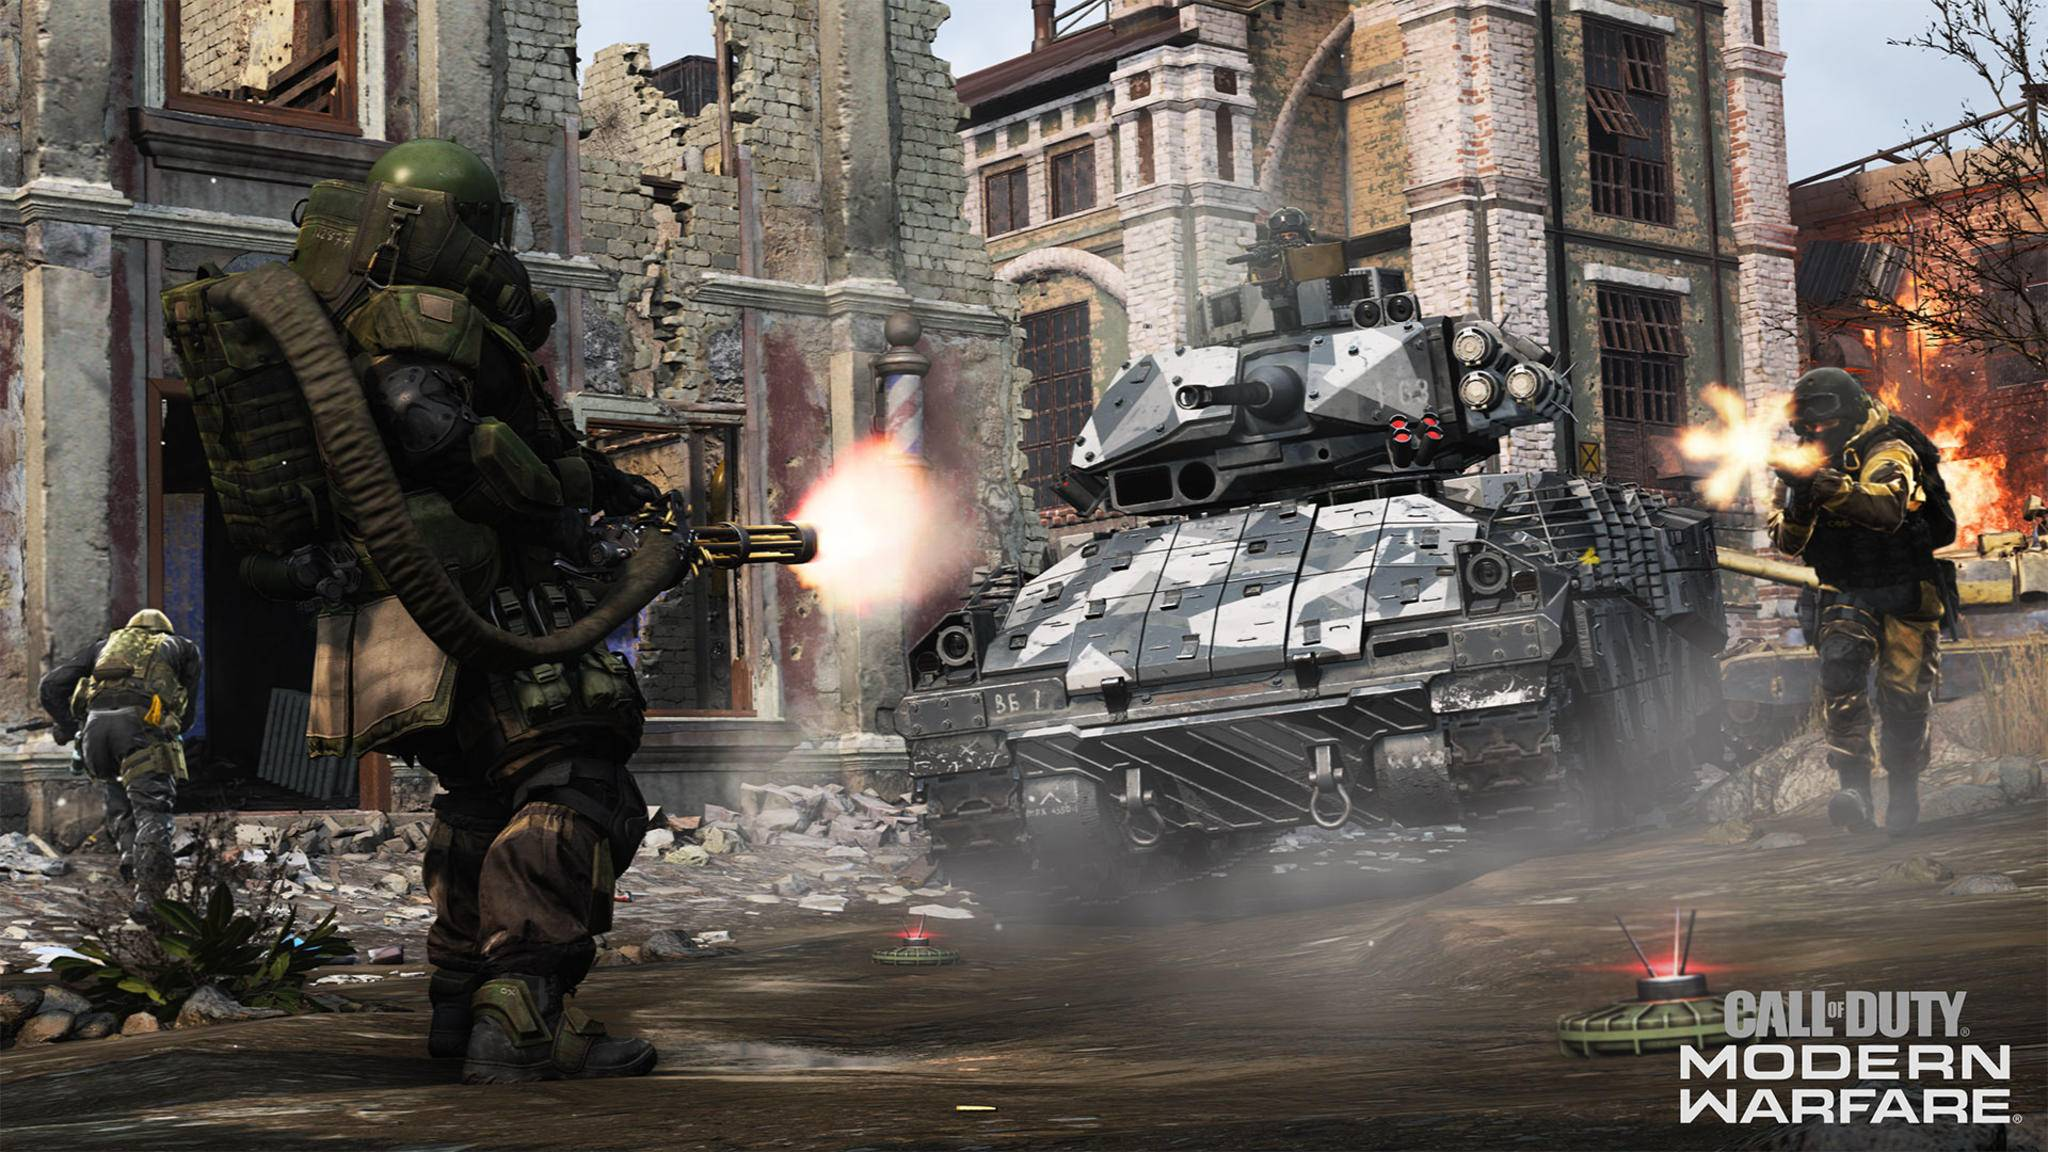 call-of-duty-modern-warfare-multiplayer-screenshot-04